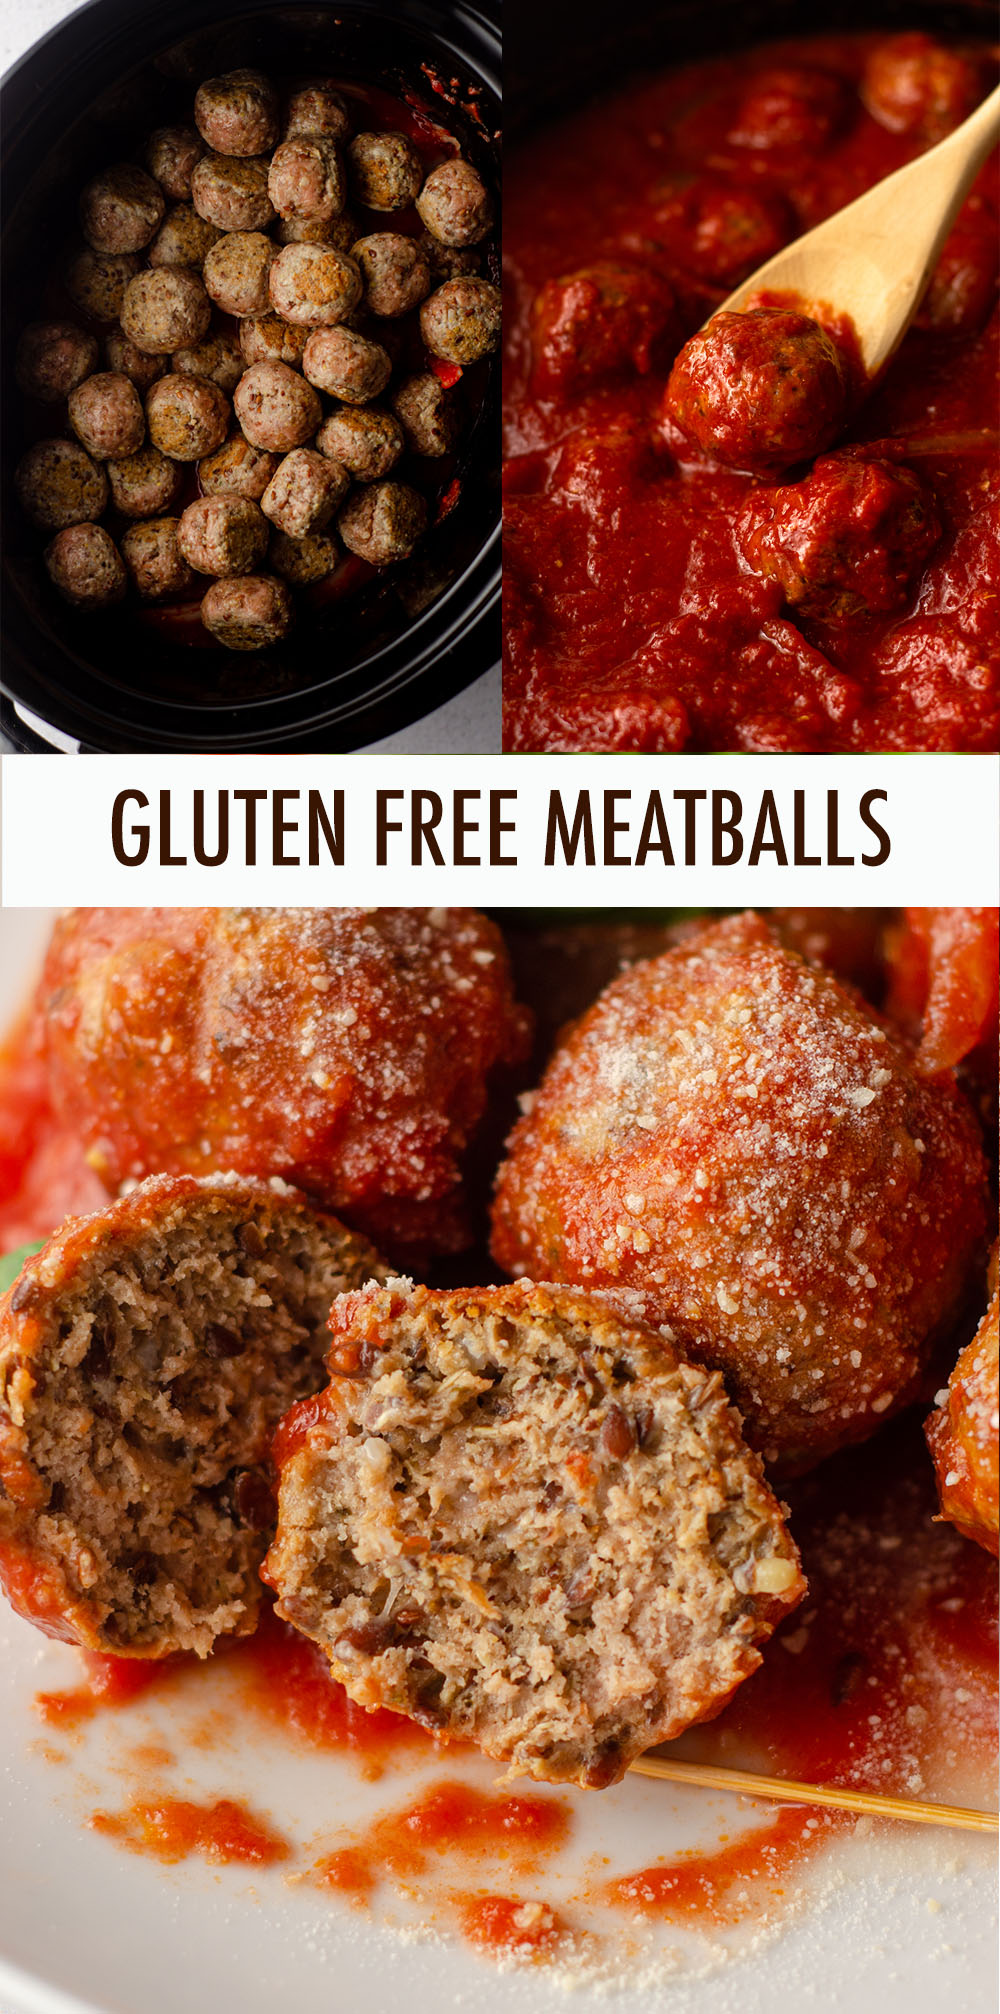 Easy, flavorful gluten free turkey meatballs made with ground flaxseed in place of breadcrumbs.